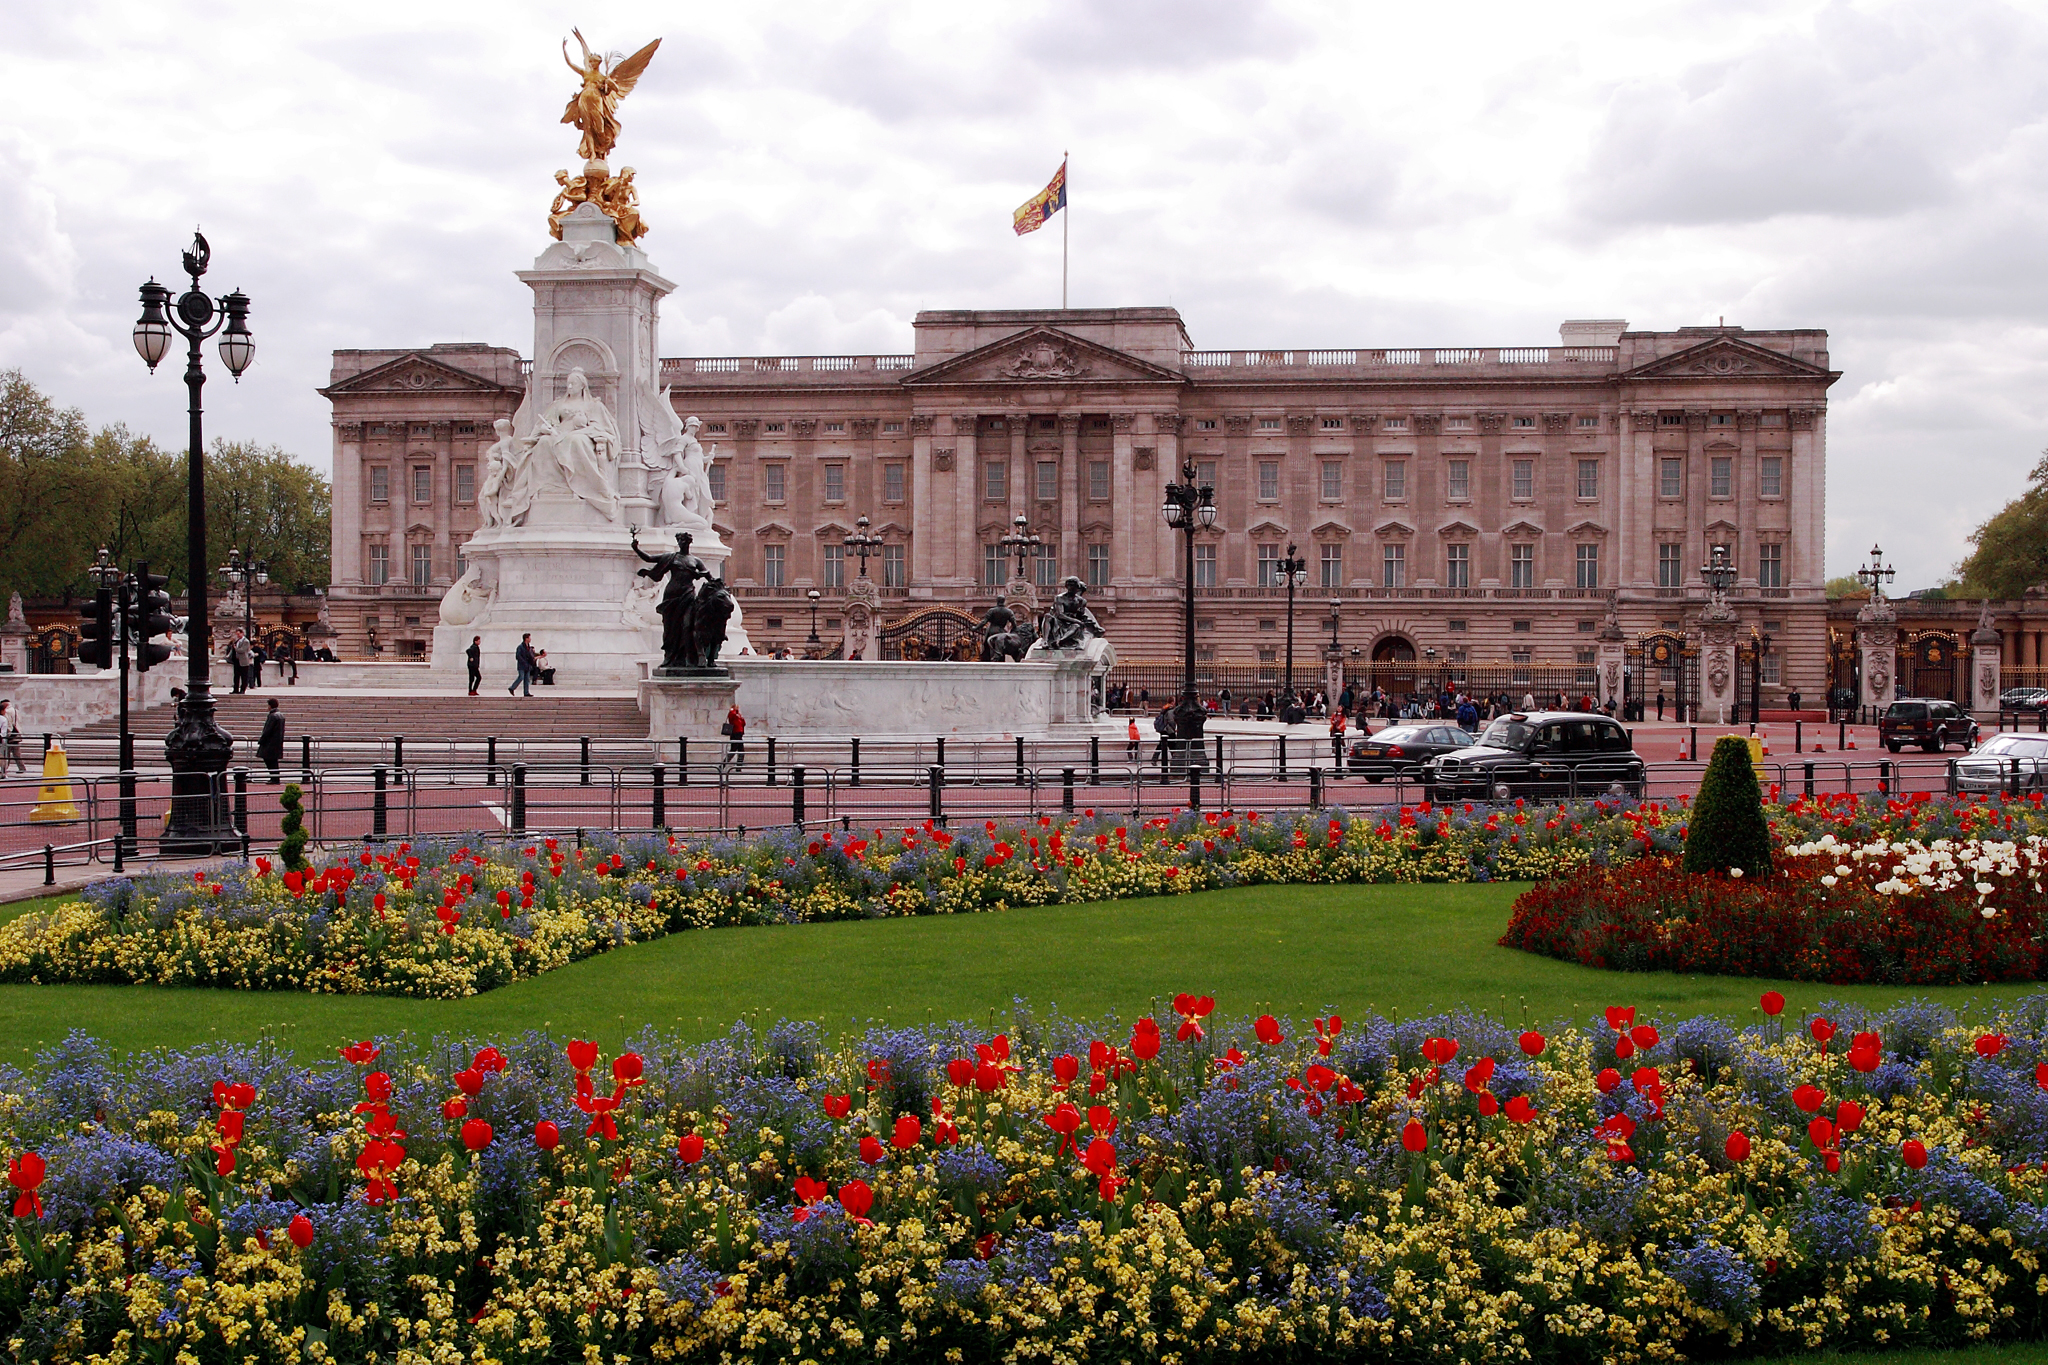 Buckingham Palace -  Just one of many places her Majesty can call home